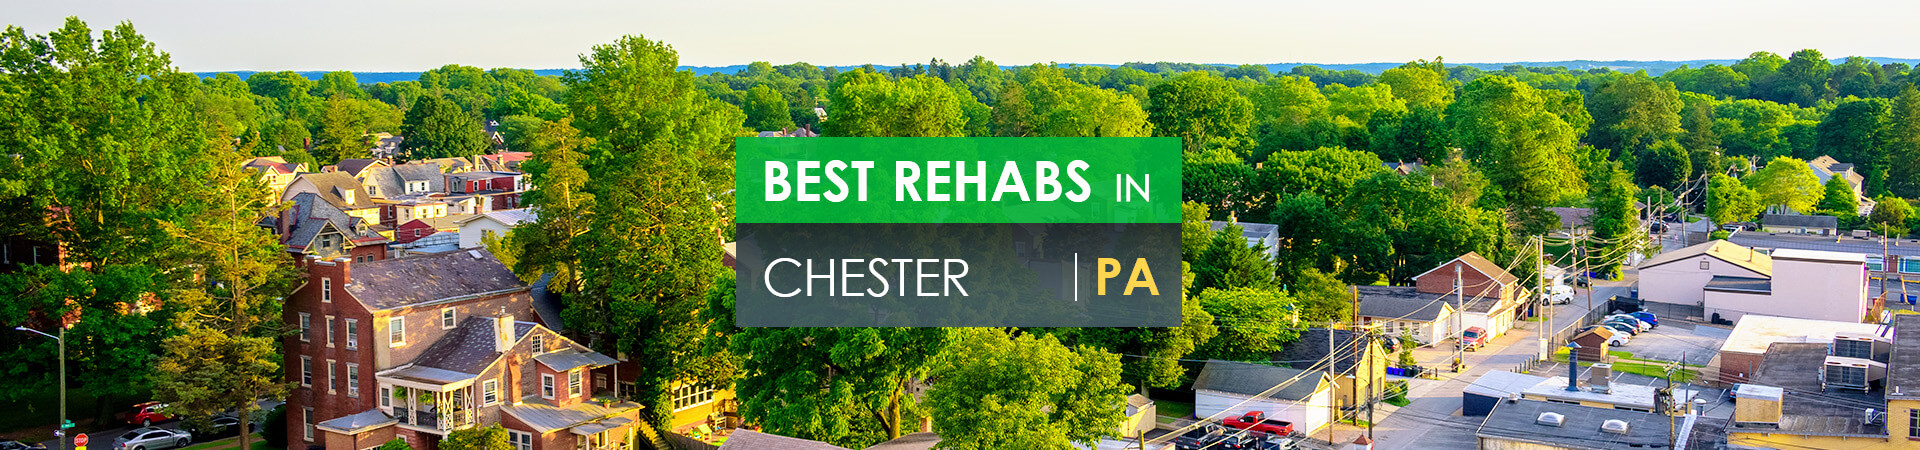 Best rehabs in Chester, PA